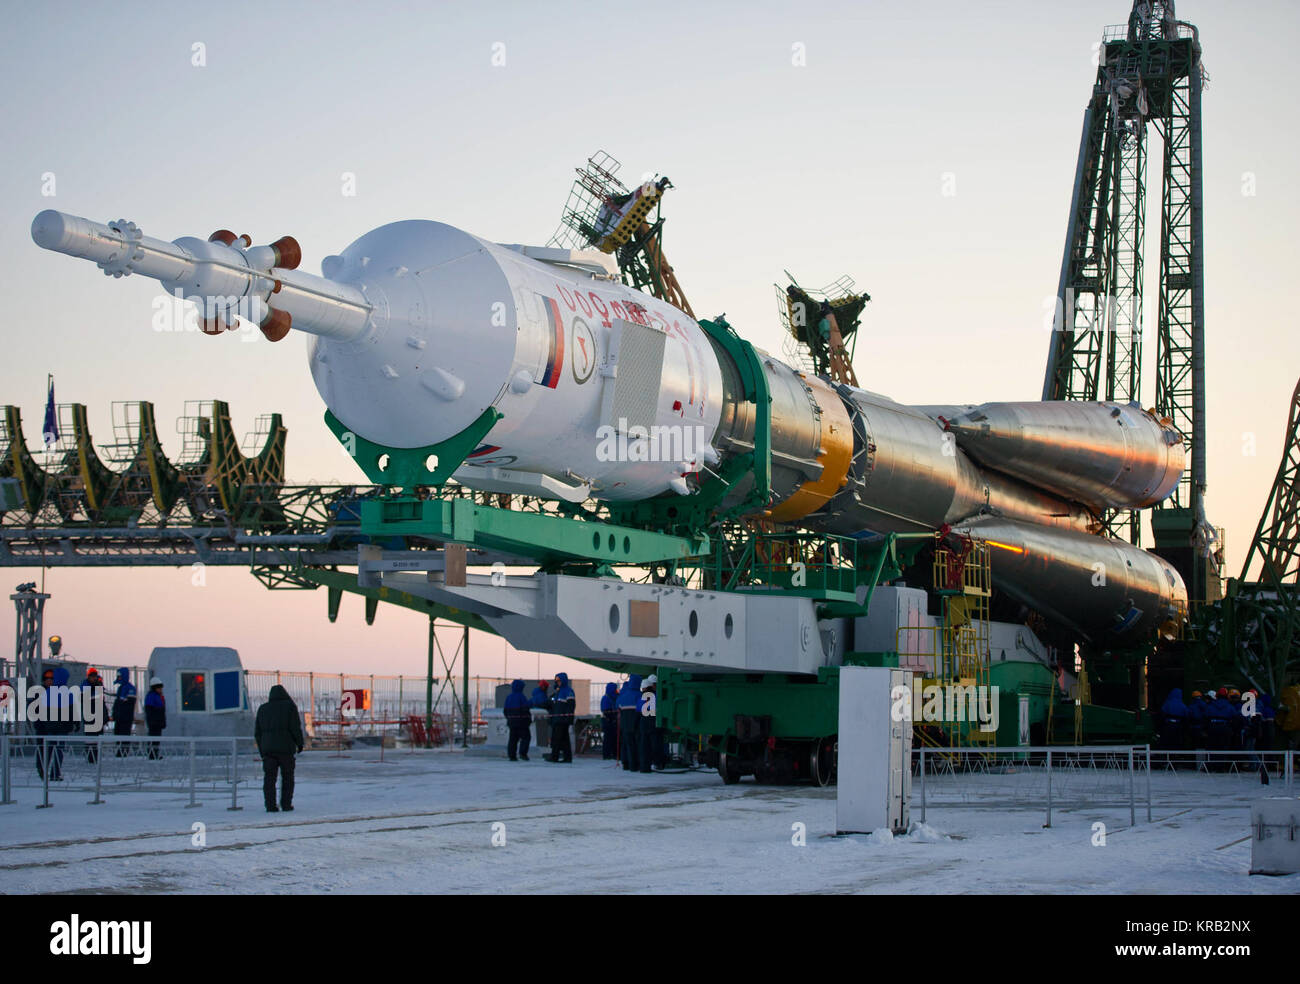 The Soyuz TMA-03M spacecraft is seen shortly after arriving at the launch pad Monday, Dec. 19, 2011 at the Baikonur - Stock Image